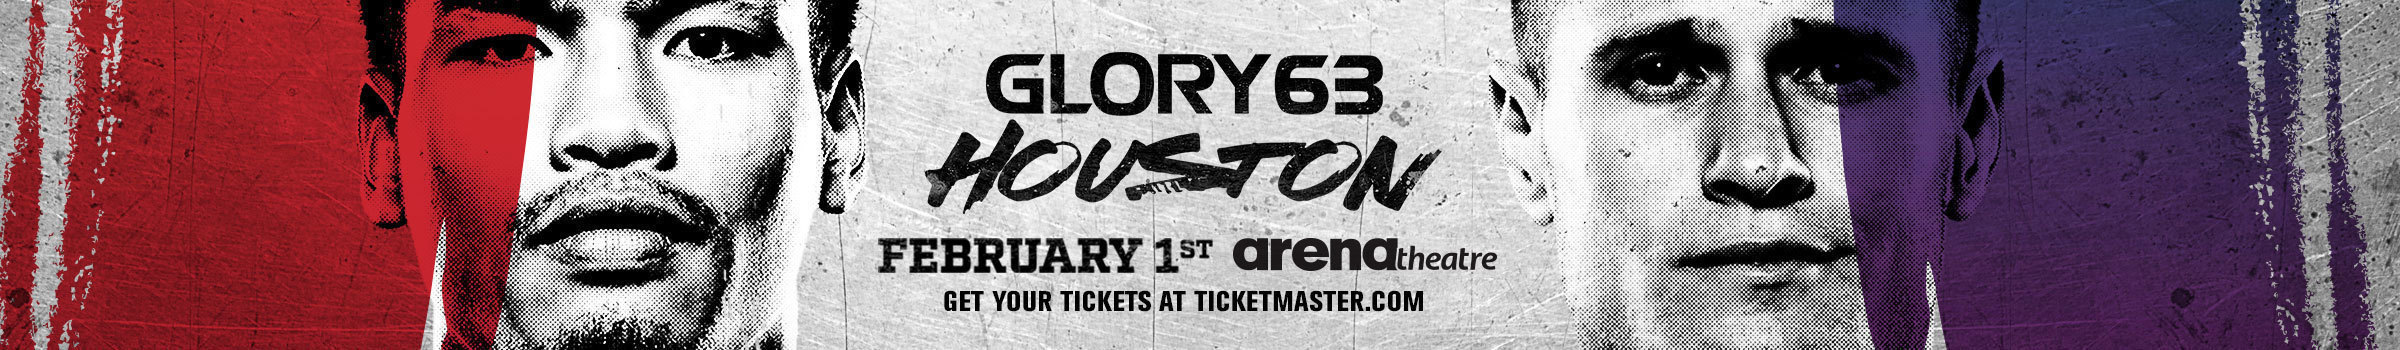 Glory 63 Houston Kickboxing Mar Wiring Diagram For Steven